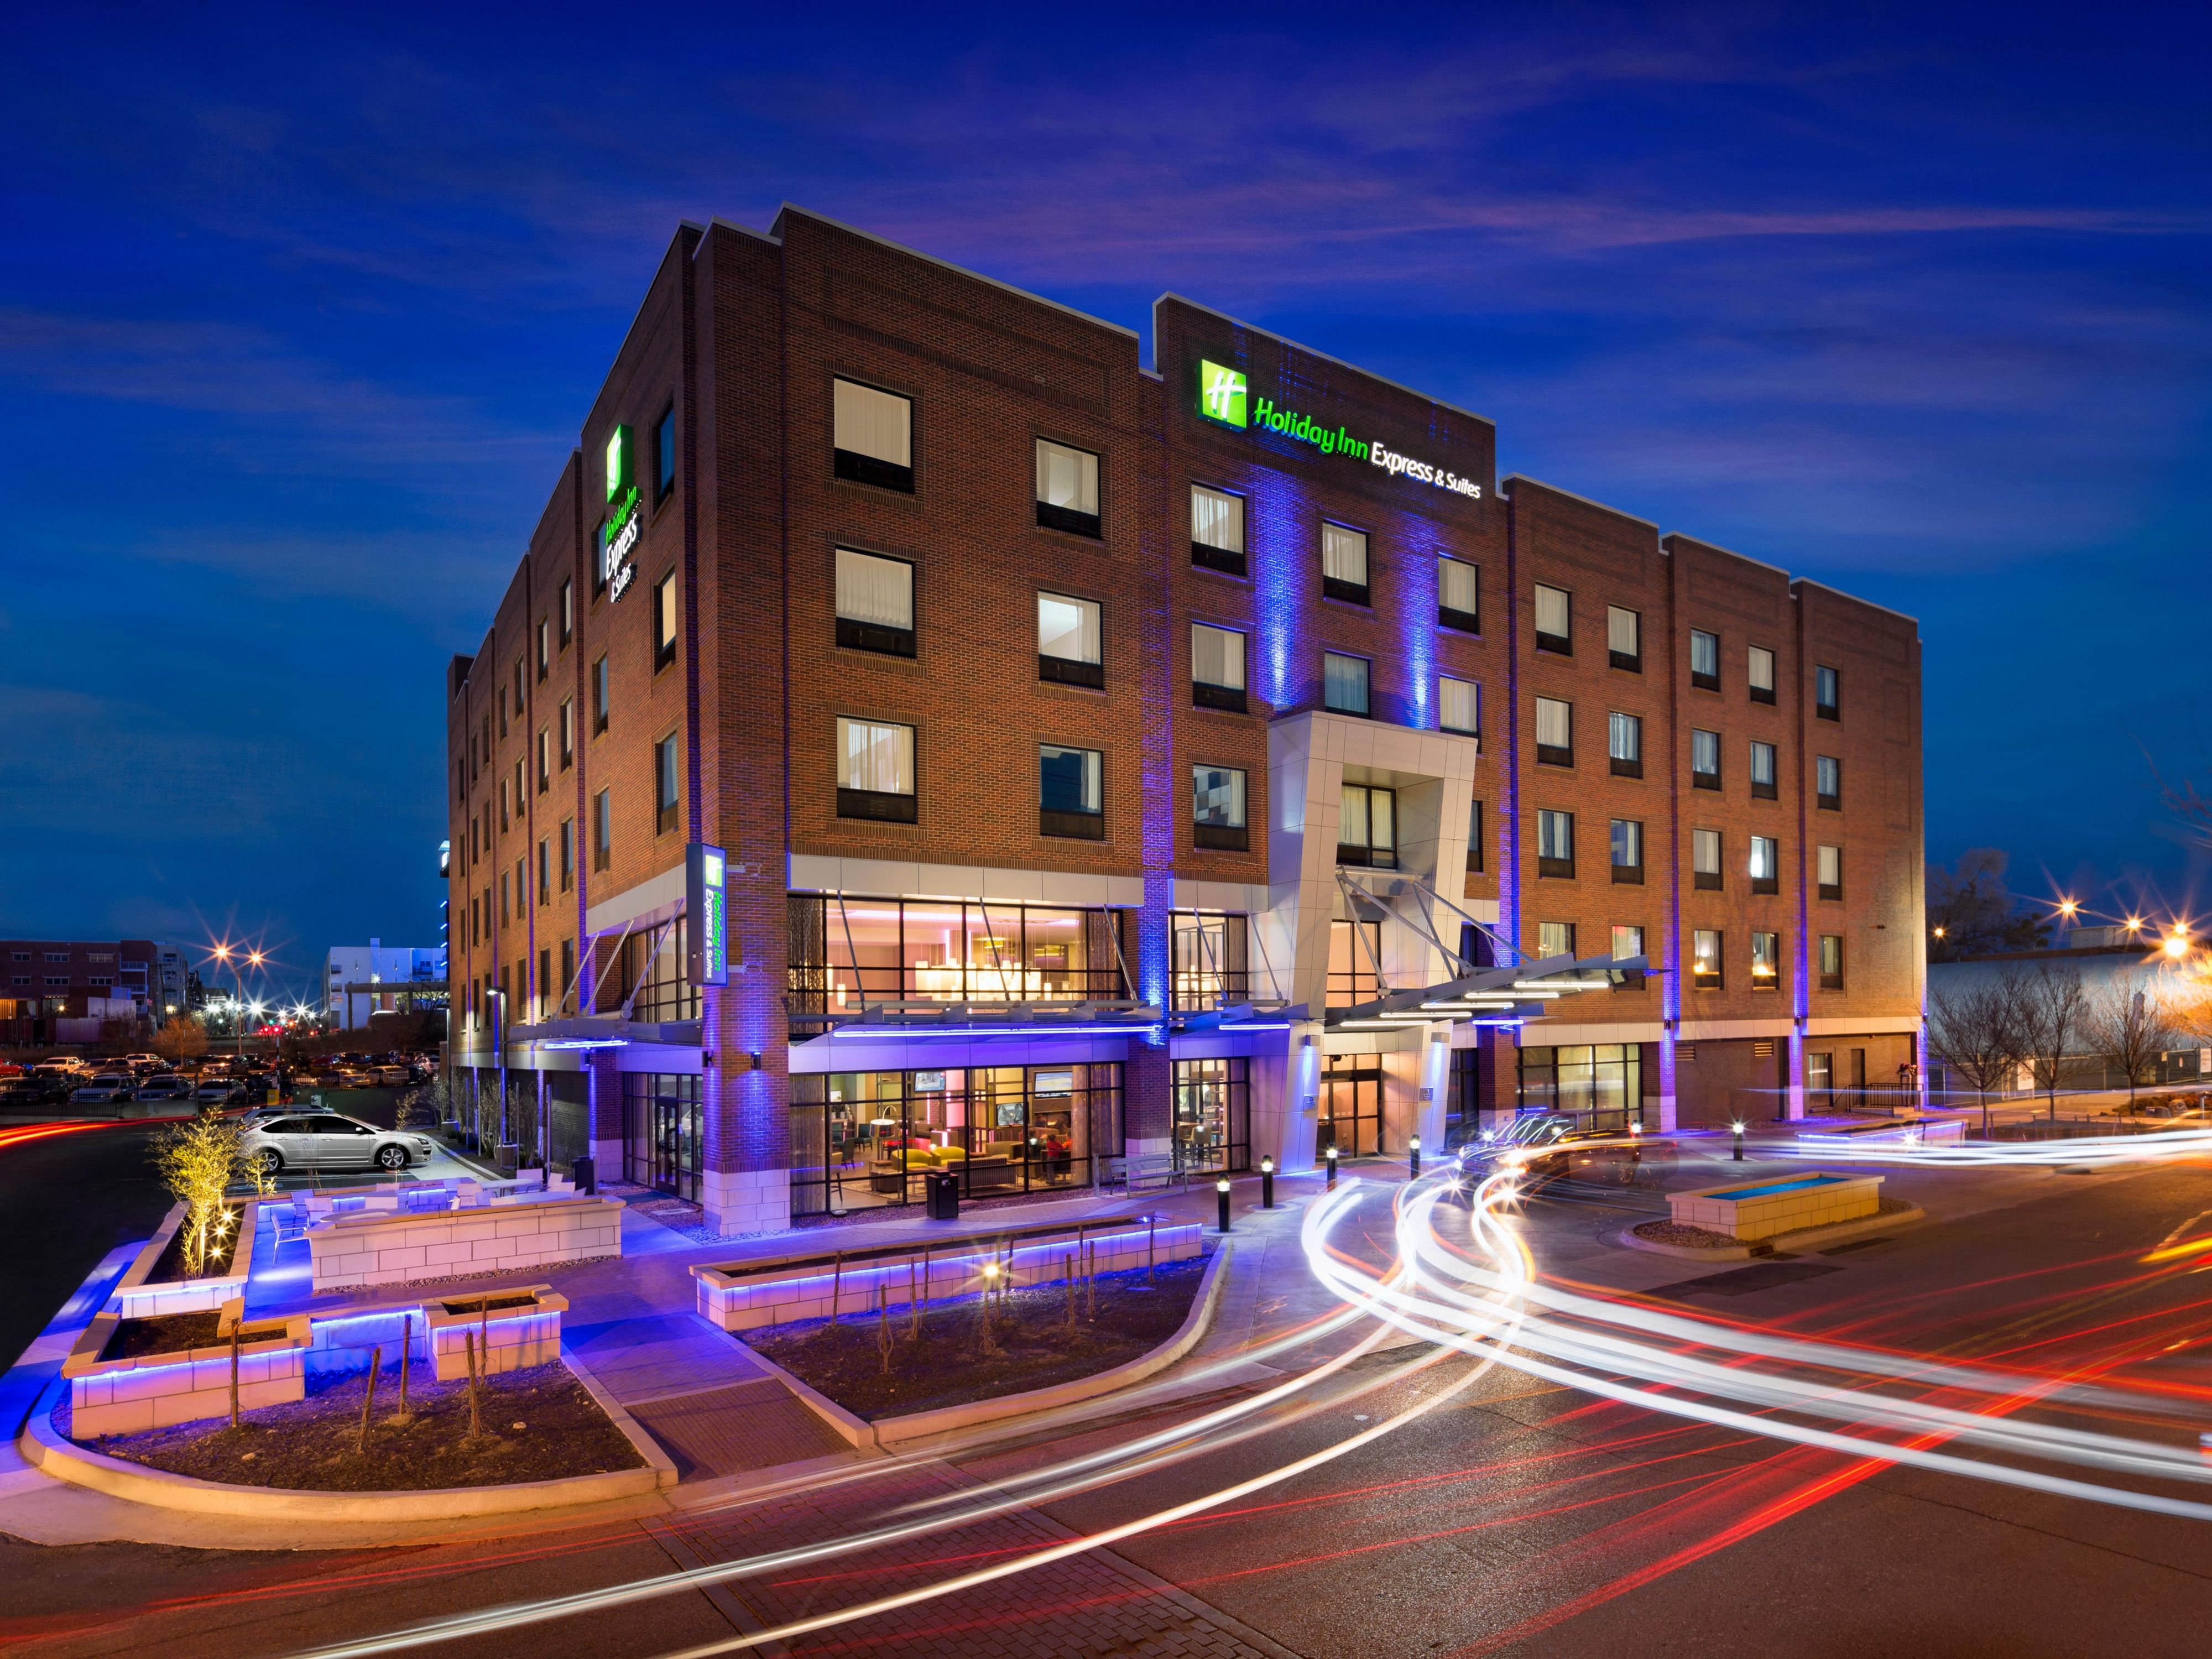 Holiday Inn Express Suites Oklahoma City Dwtn Bricktown Hotel By Ihg